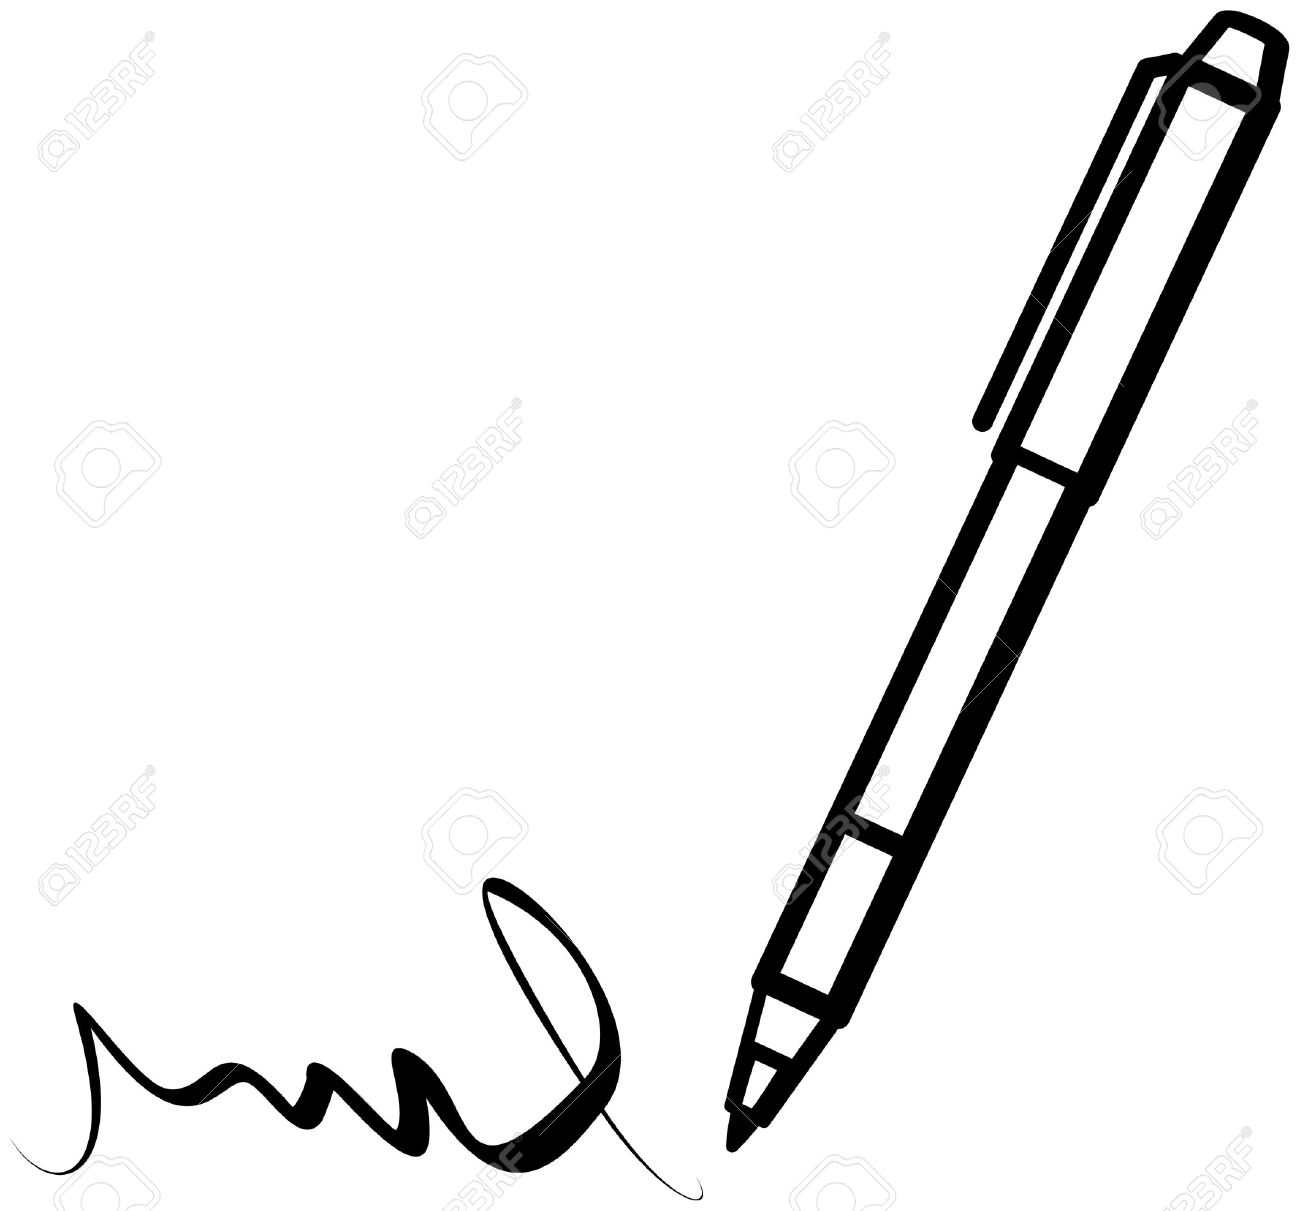 pen clipart outline pen outline transparent free for download on webstockreview 2020 pen clipart outline pen outline